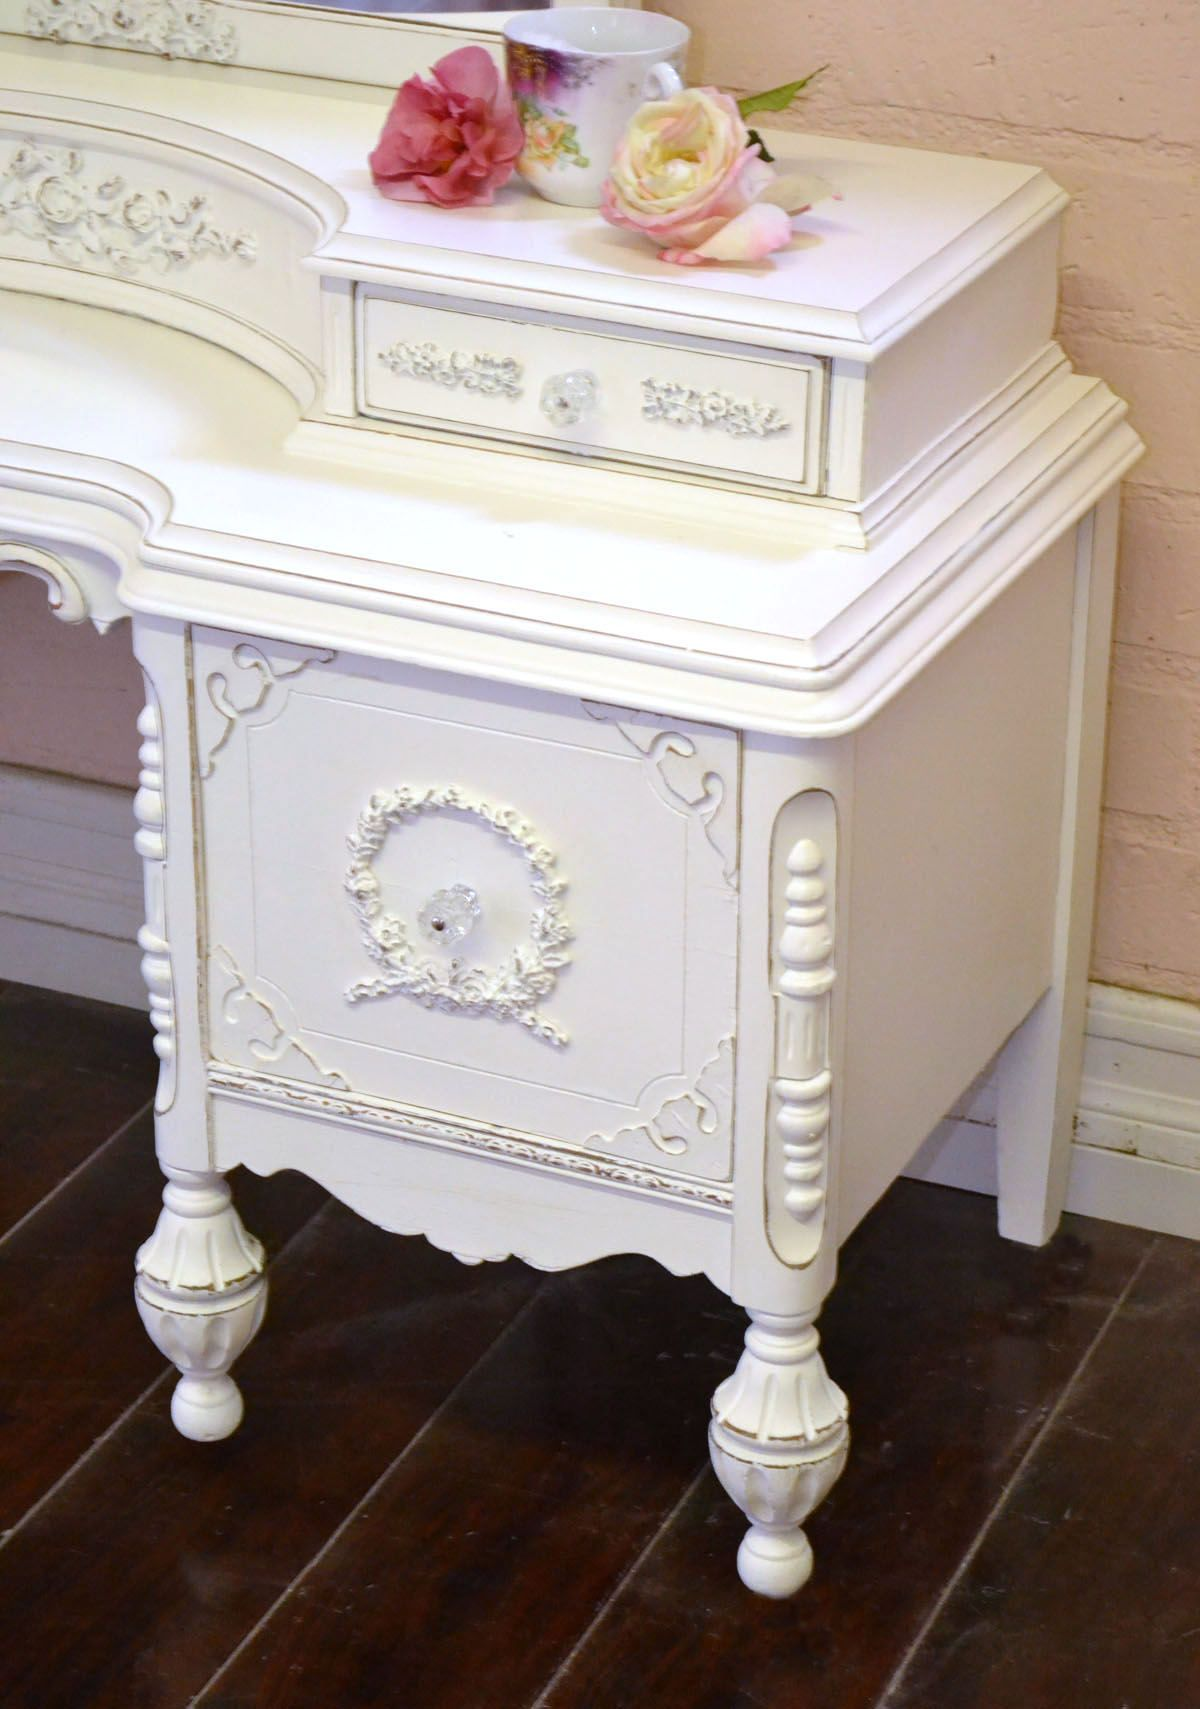 Pleasing Chabby Chic Corner Makeup Vanity Shabby Cottage Chic White Home Interior And Landscaping Ologienasavecom